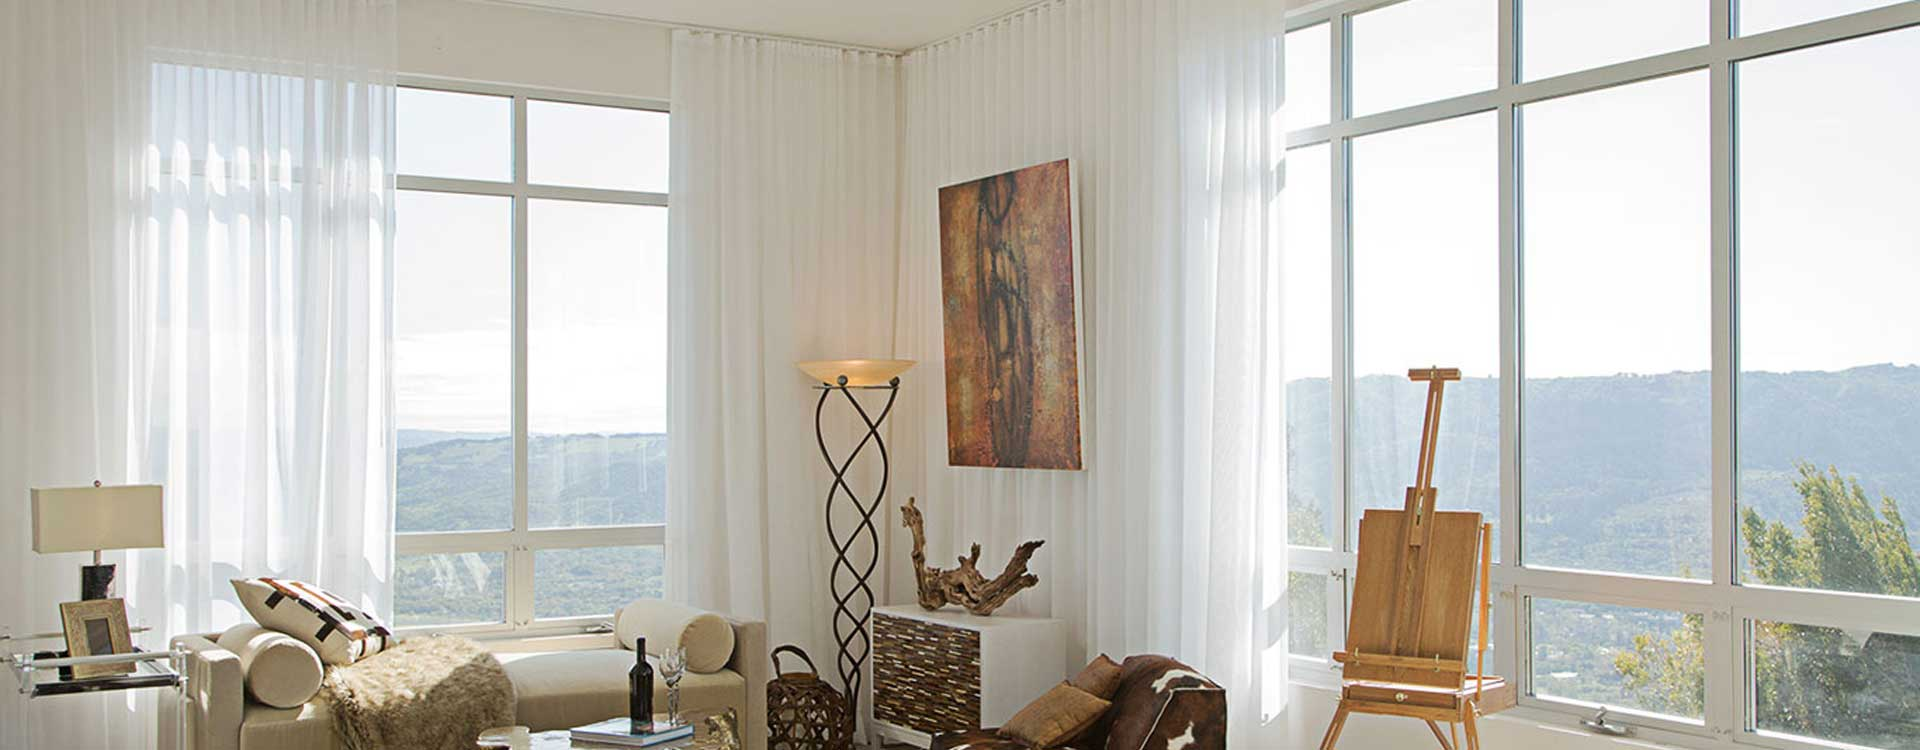 treatments cool portray sheer decors added for corner curtains regal ideas covering painted snazzy interior wall lovely drapes decorating grey orange curtai inspiration well windows as and in window treatment